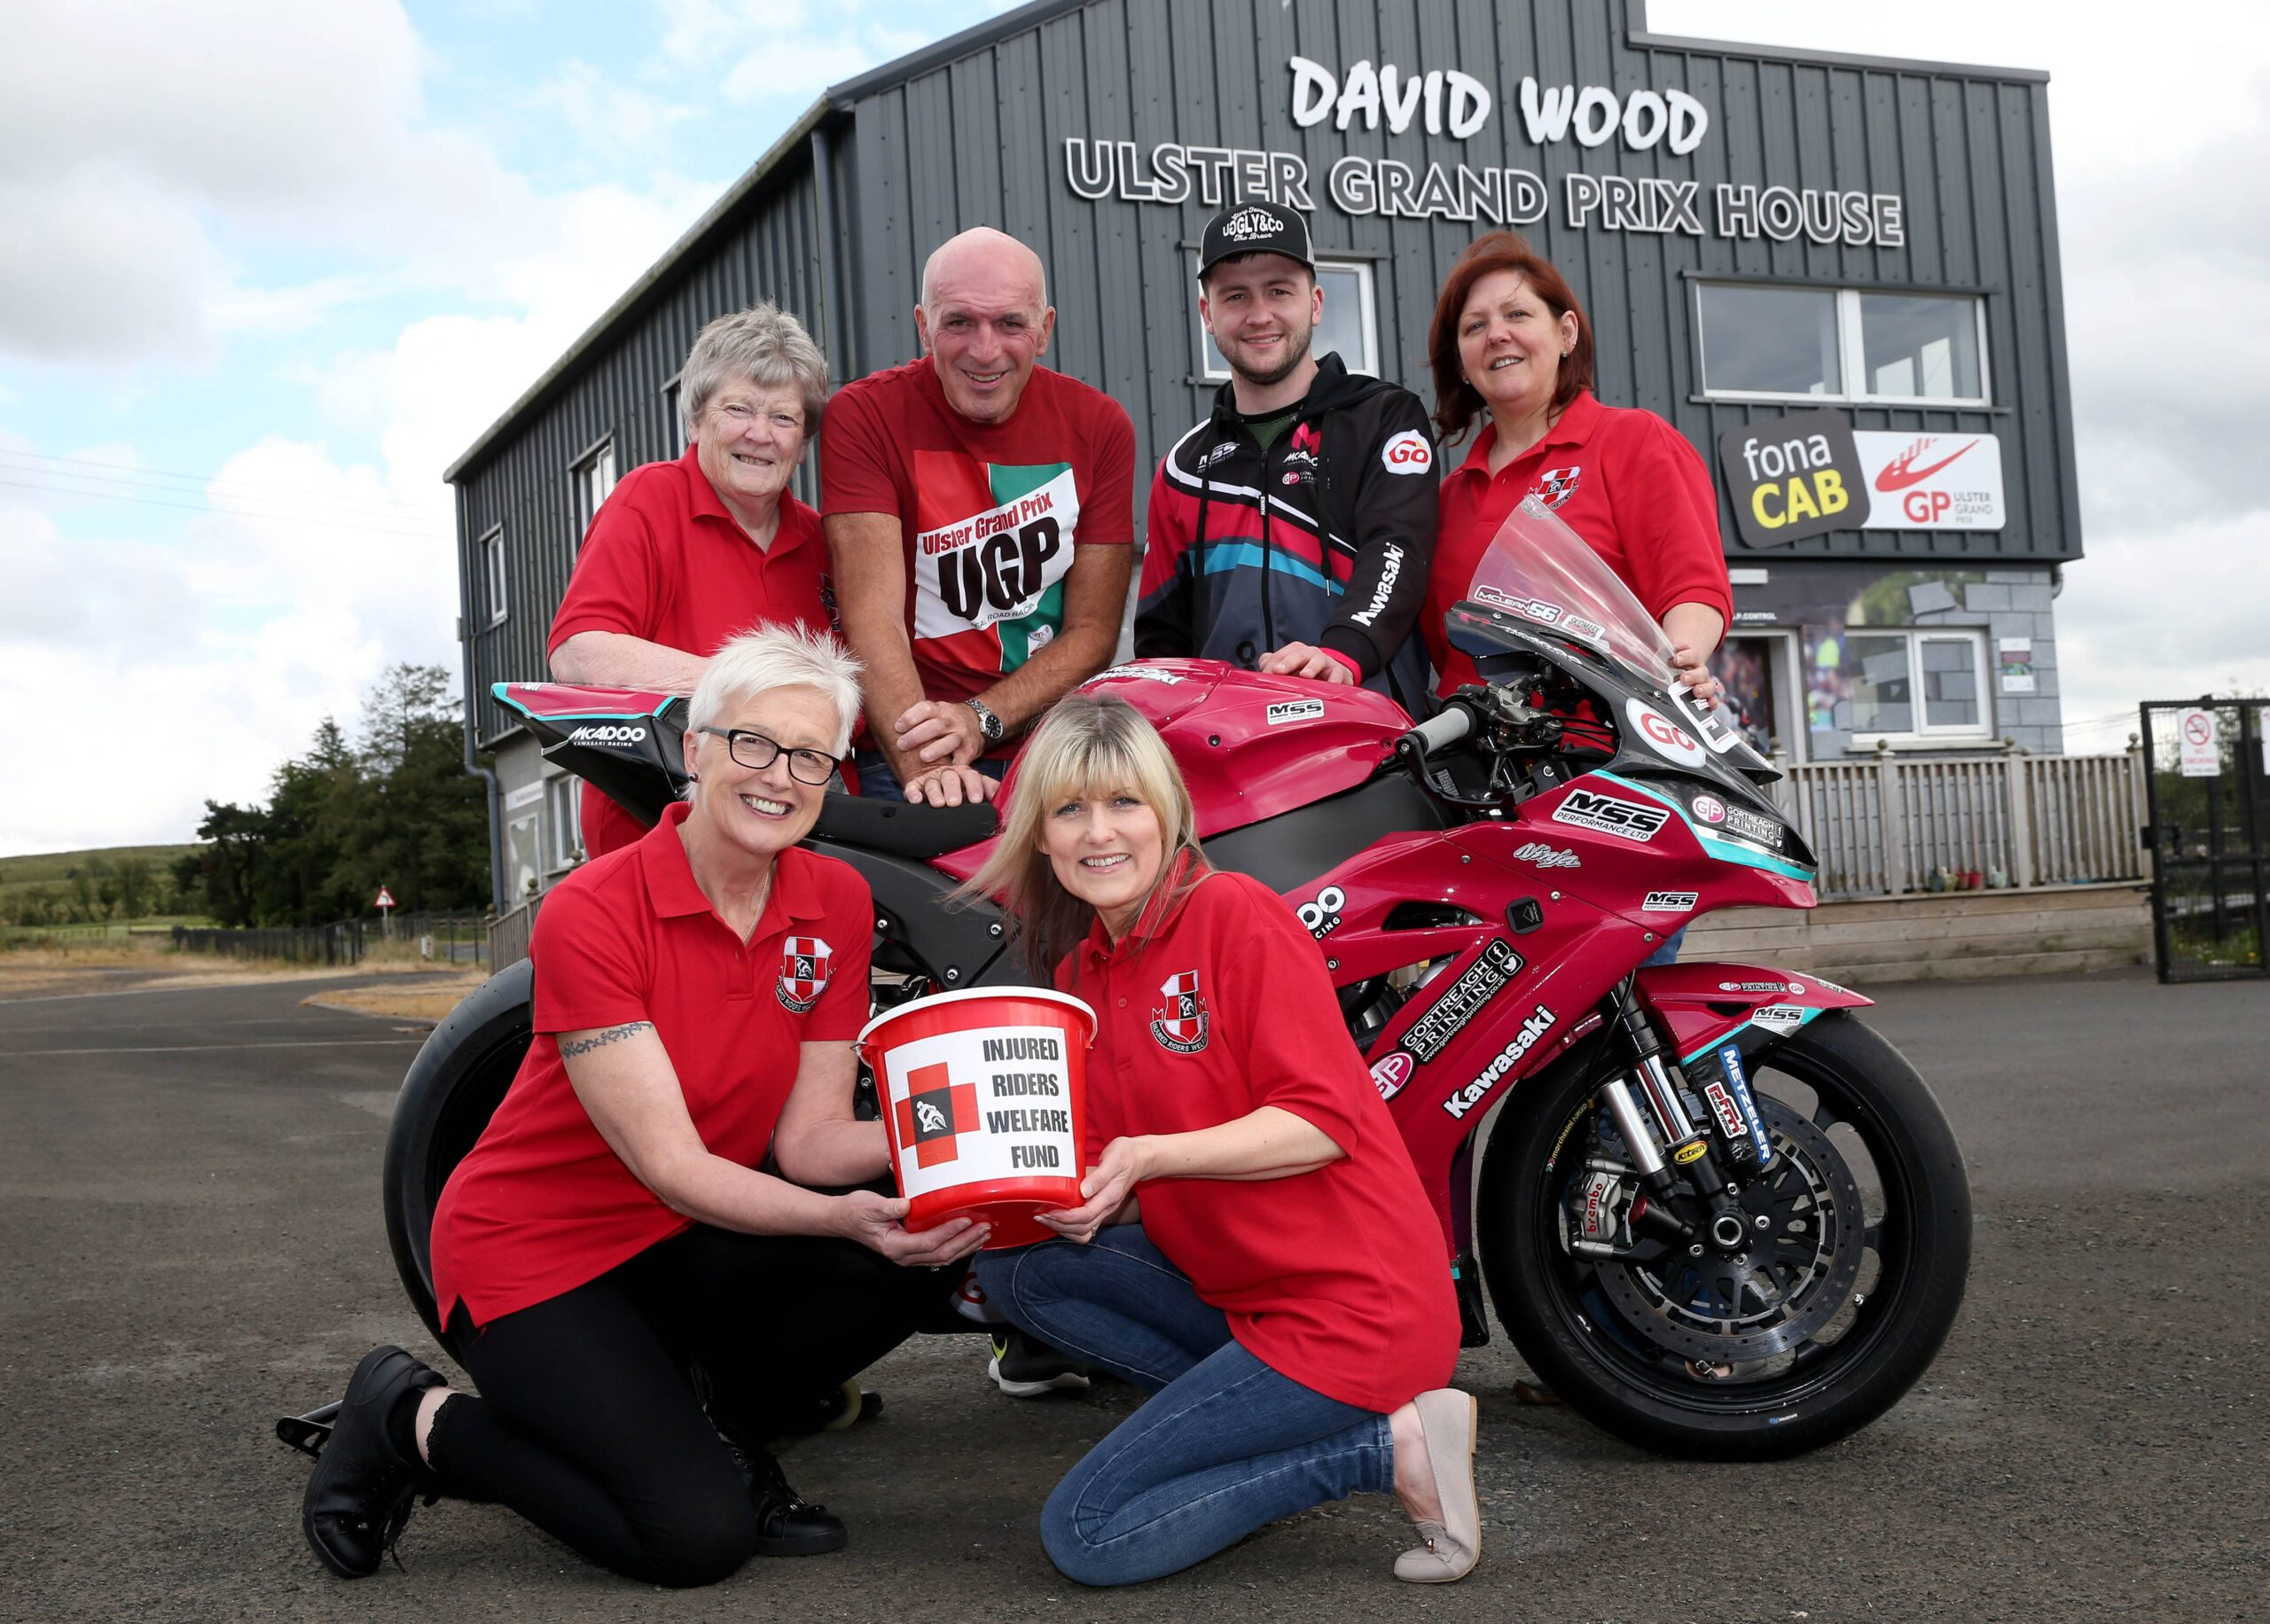 Ulster Grand Prix: Rider Liaison Role For Competitive Action Absentee McLean